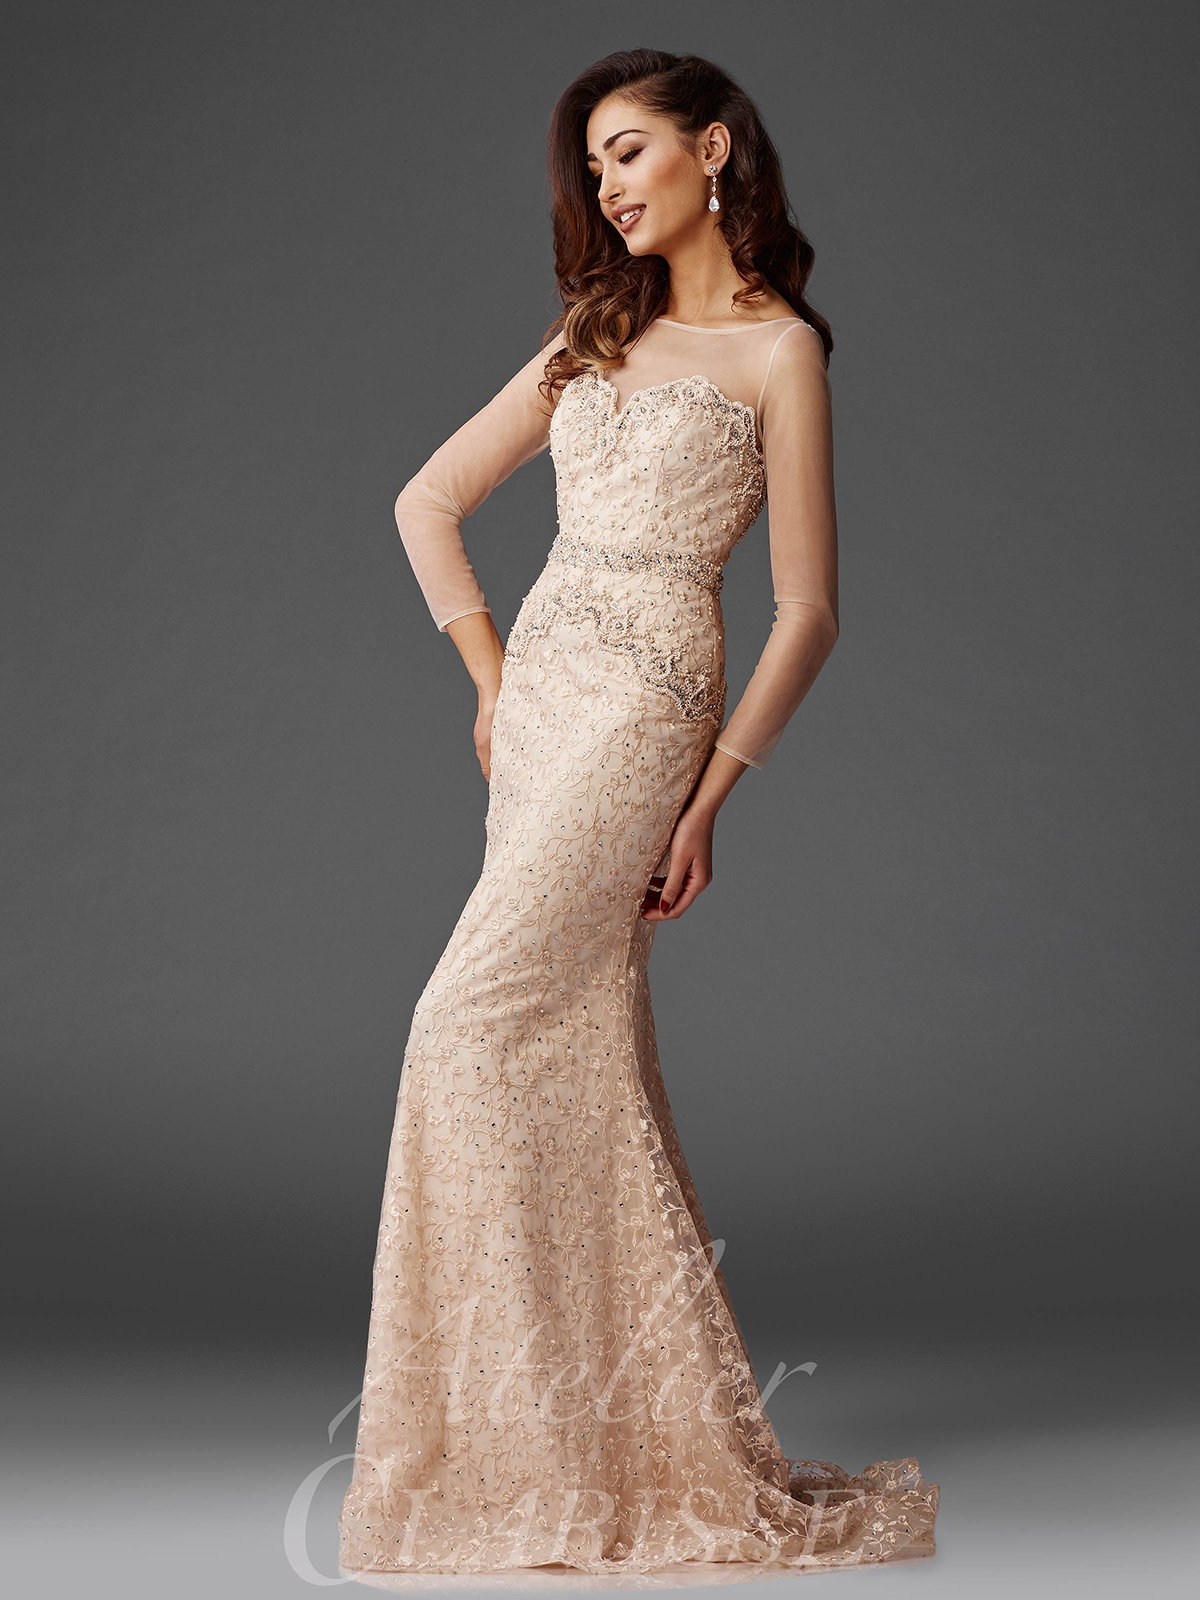 Champagne Beaded Dresses